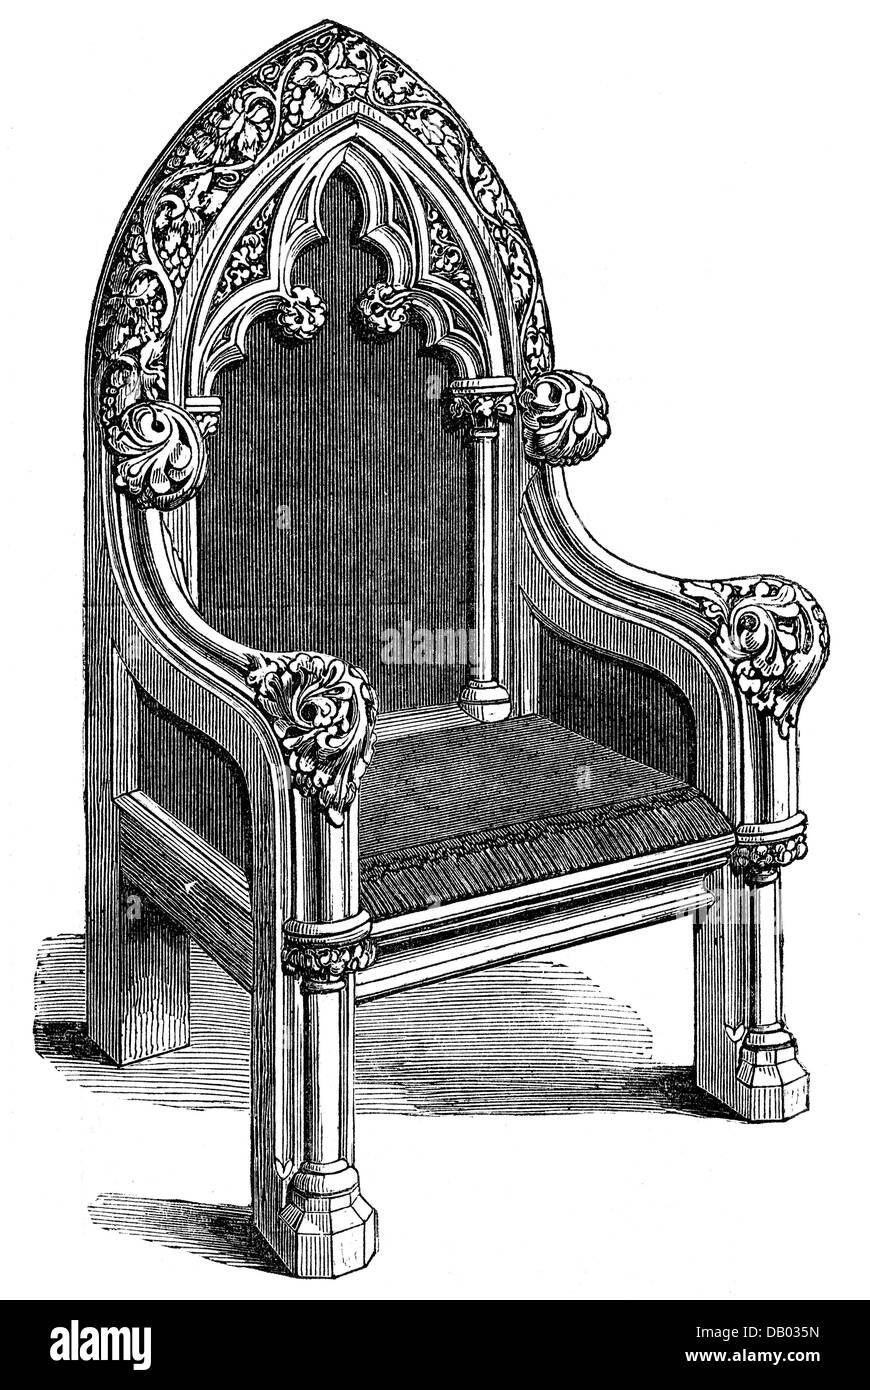 furnishings, chairs, gothic chair, by Williams and Lumsden, design ...